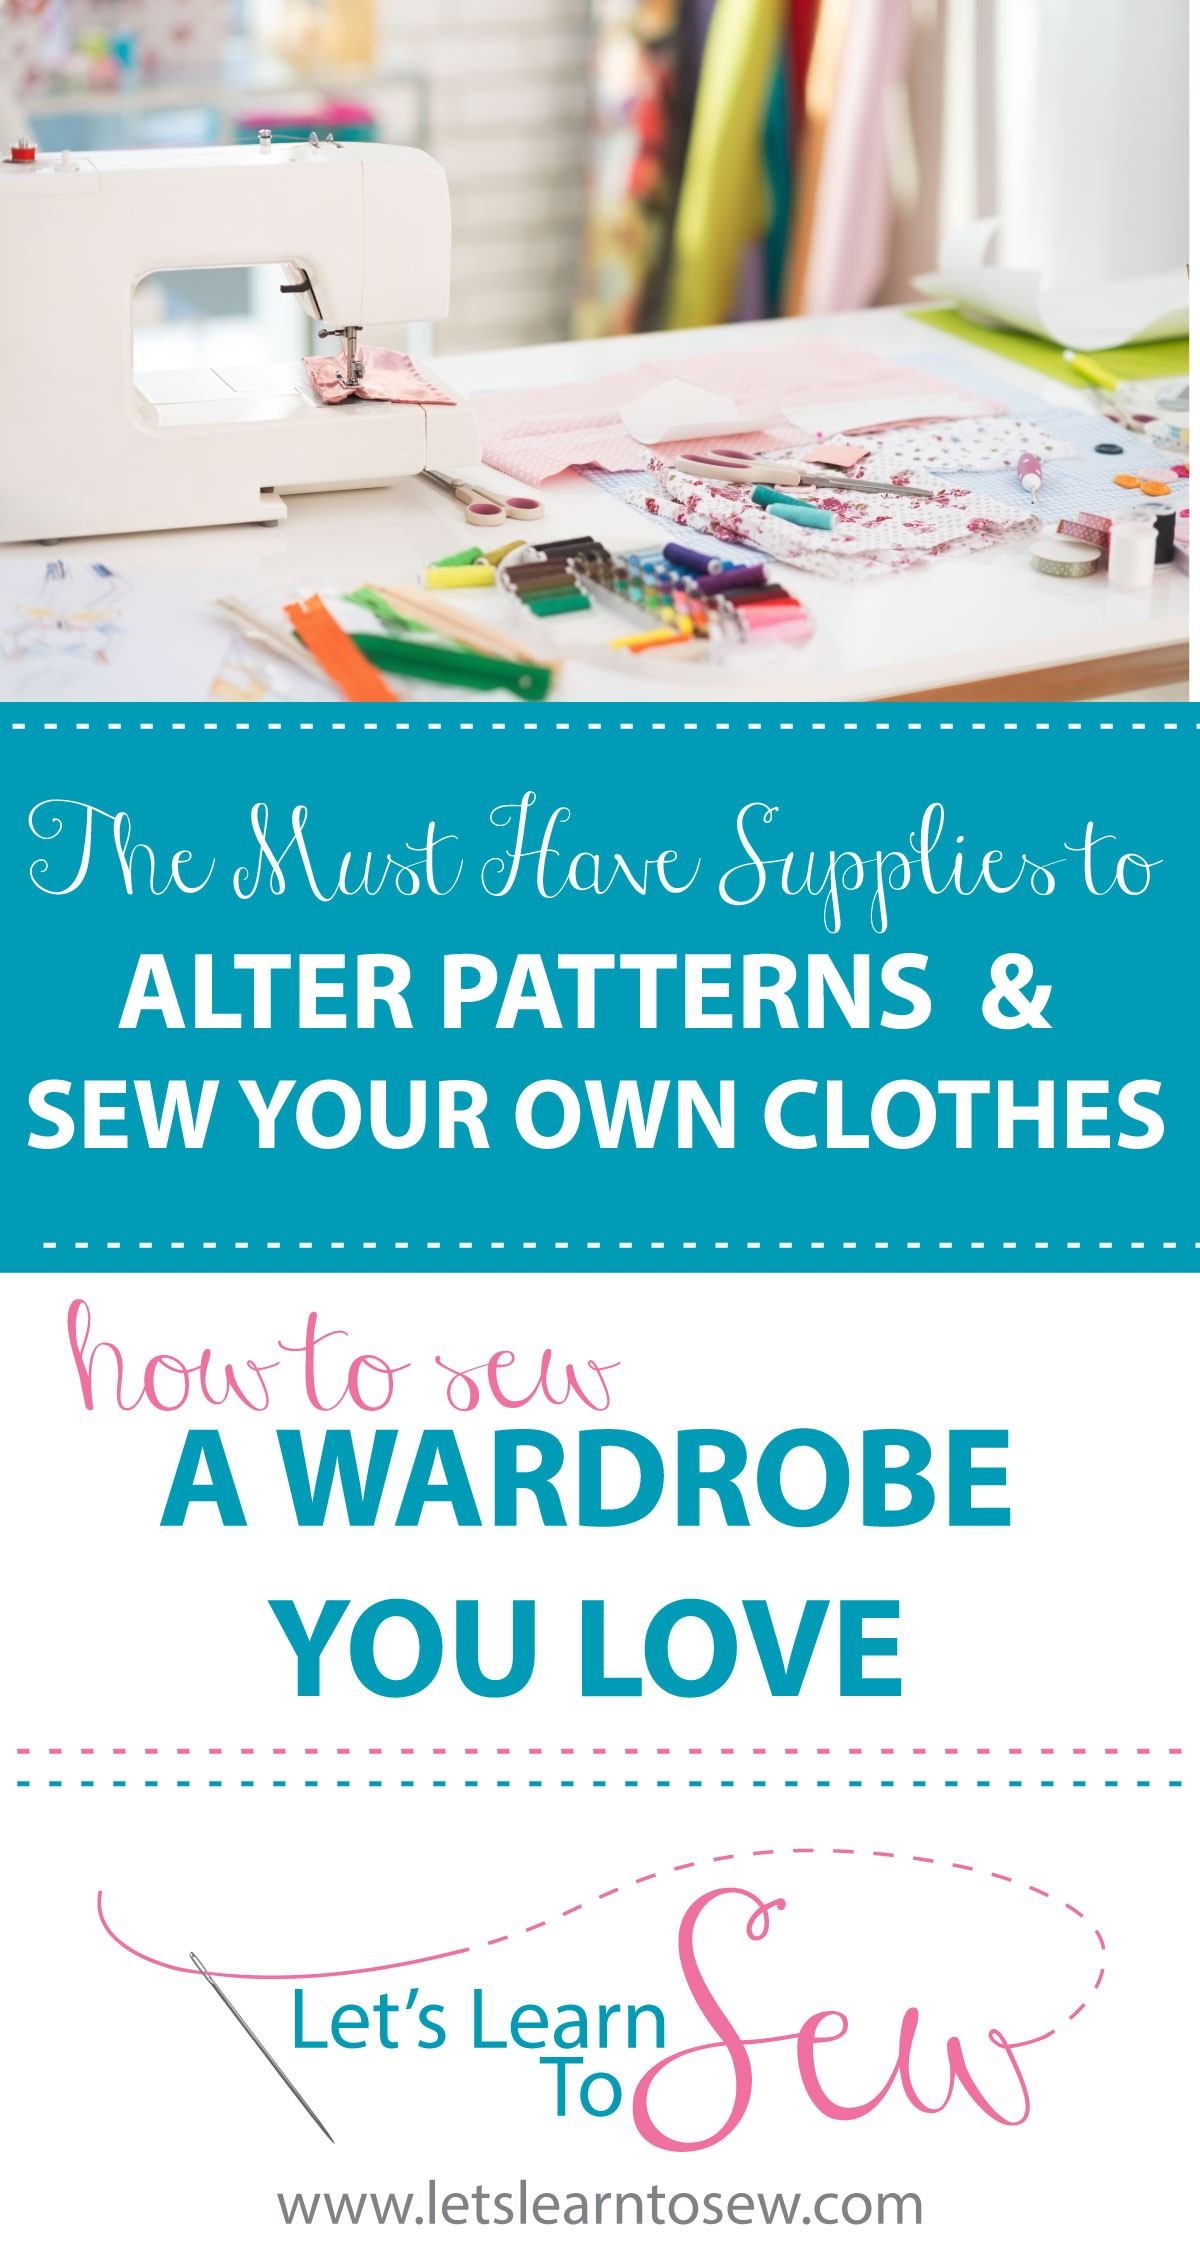 The Basic Supplies To Alter Patterns and Sew a Wardrobe